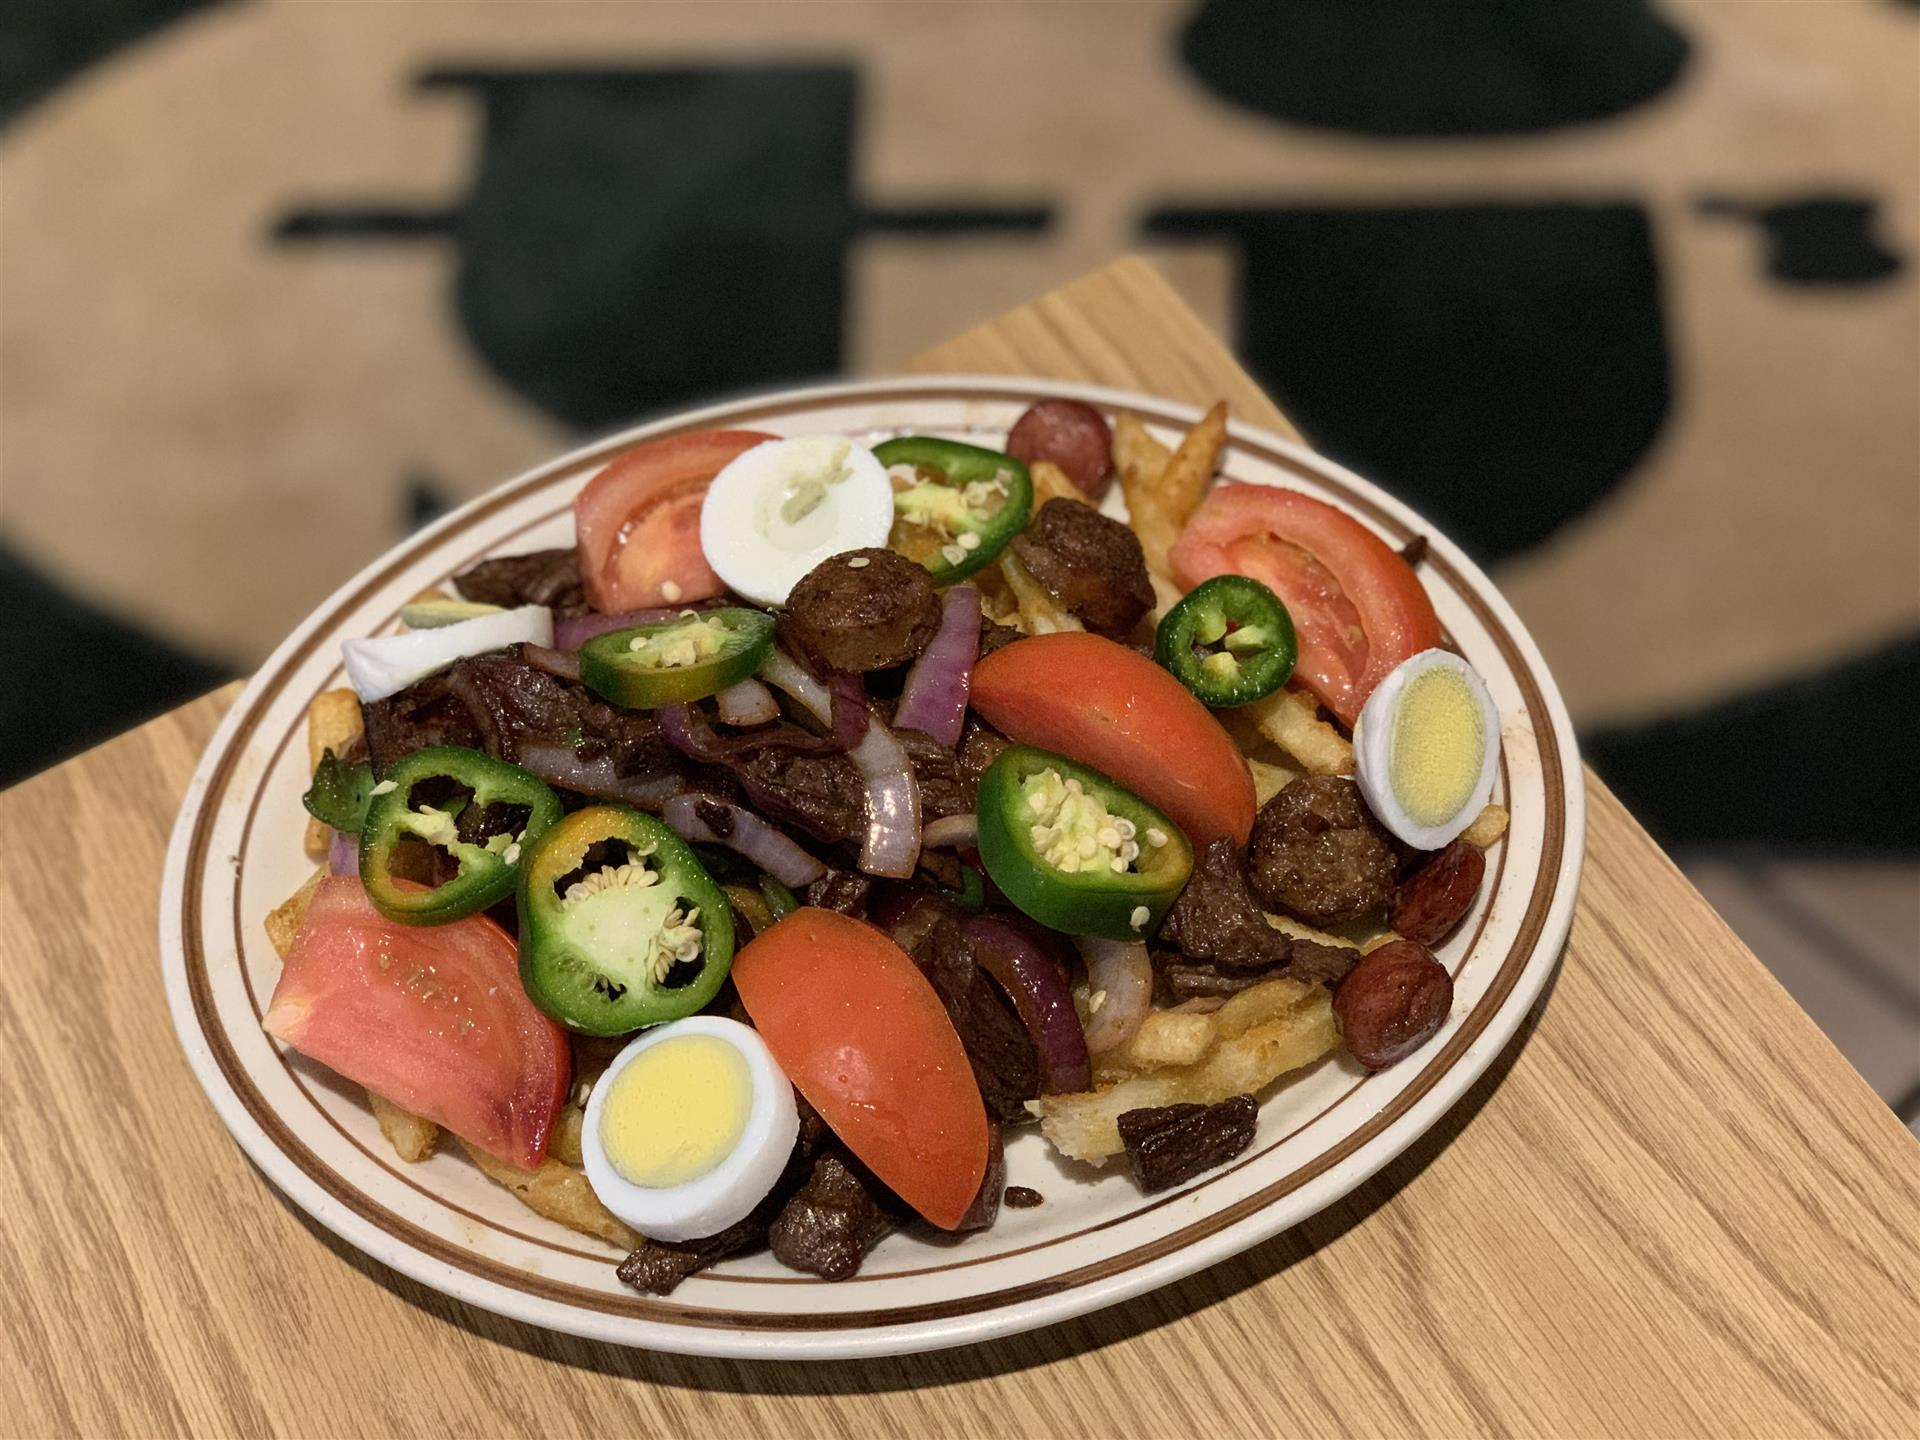 tomatoes, hard-boiled eggs, jalapeños on a plate of fries